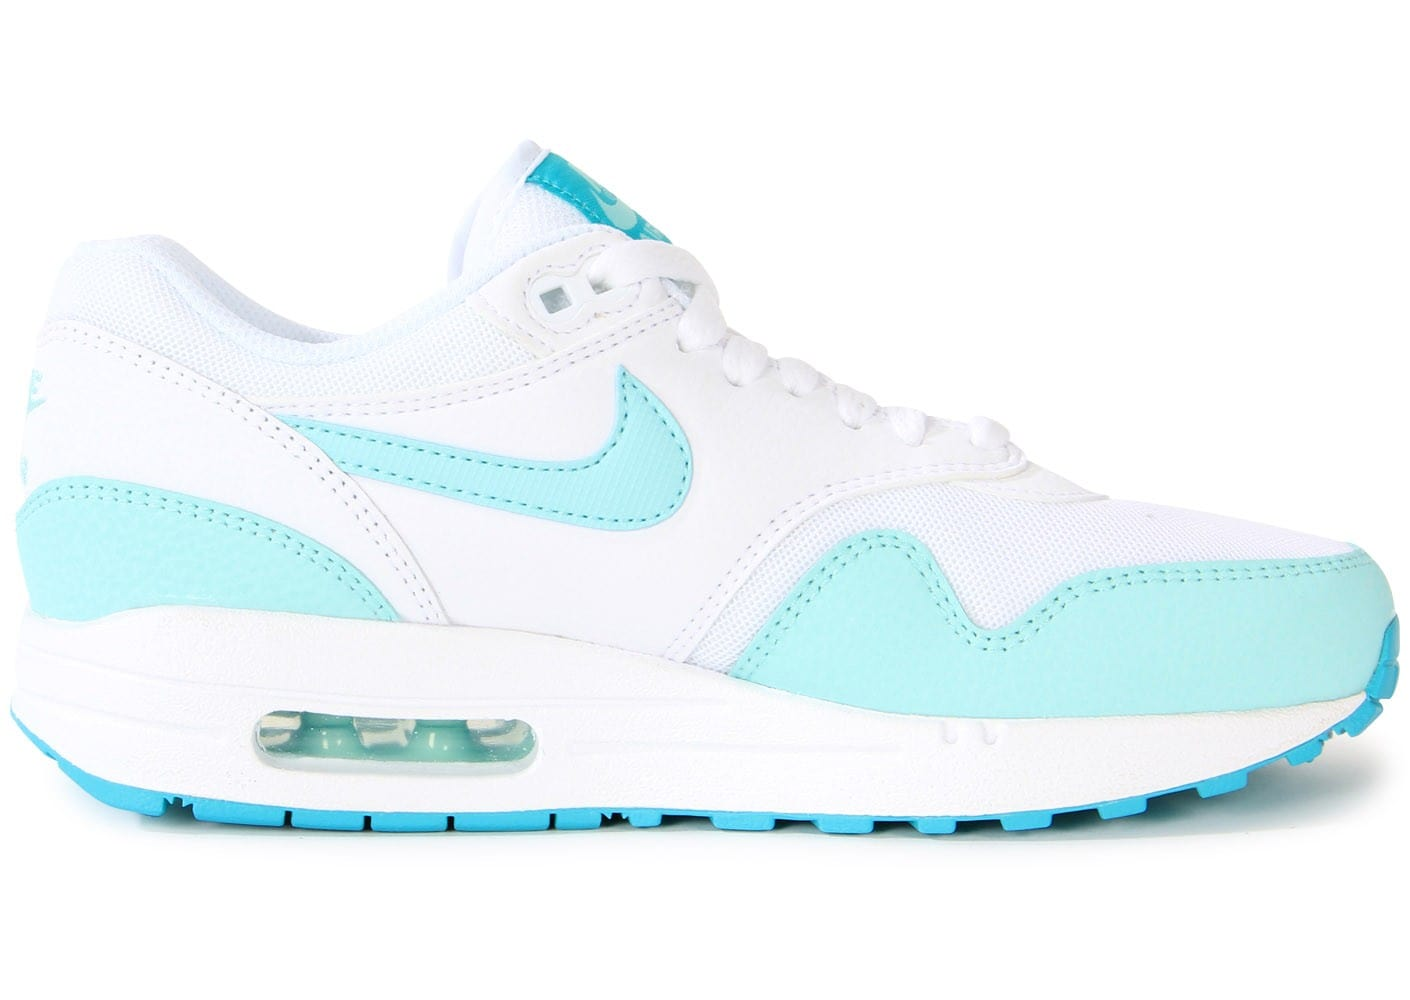 online store 622d4 823f3 ... Chaussures Nike Air Max 1 Essential Blanche Turquoise vue dessous ...